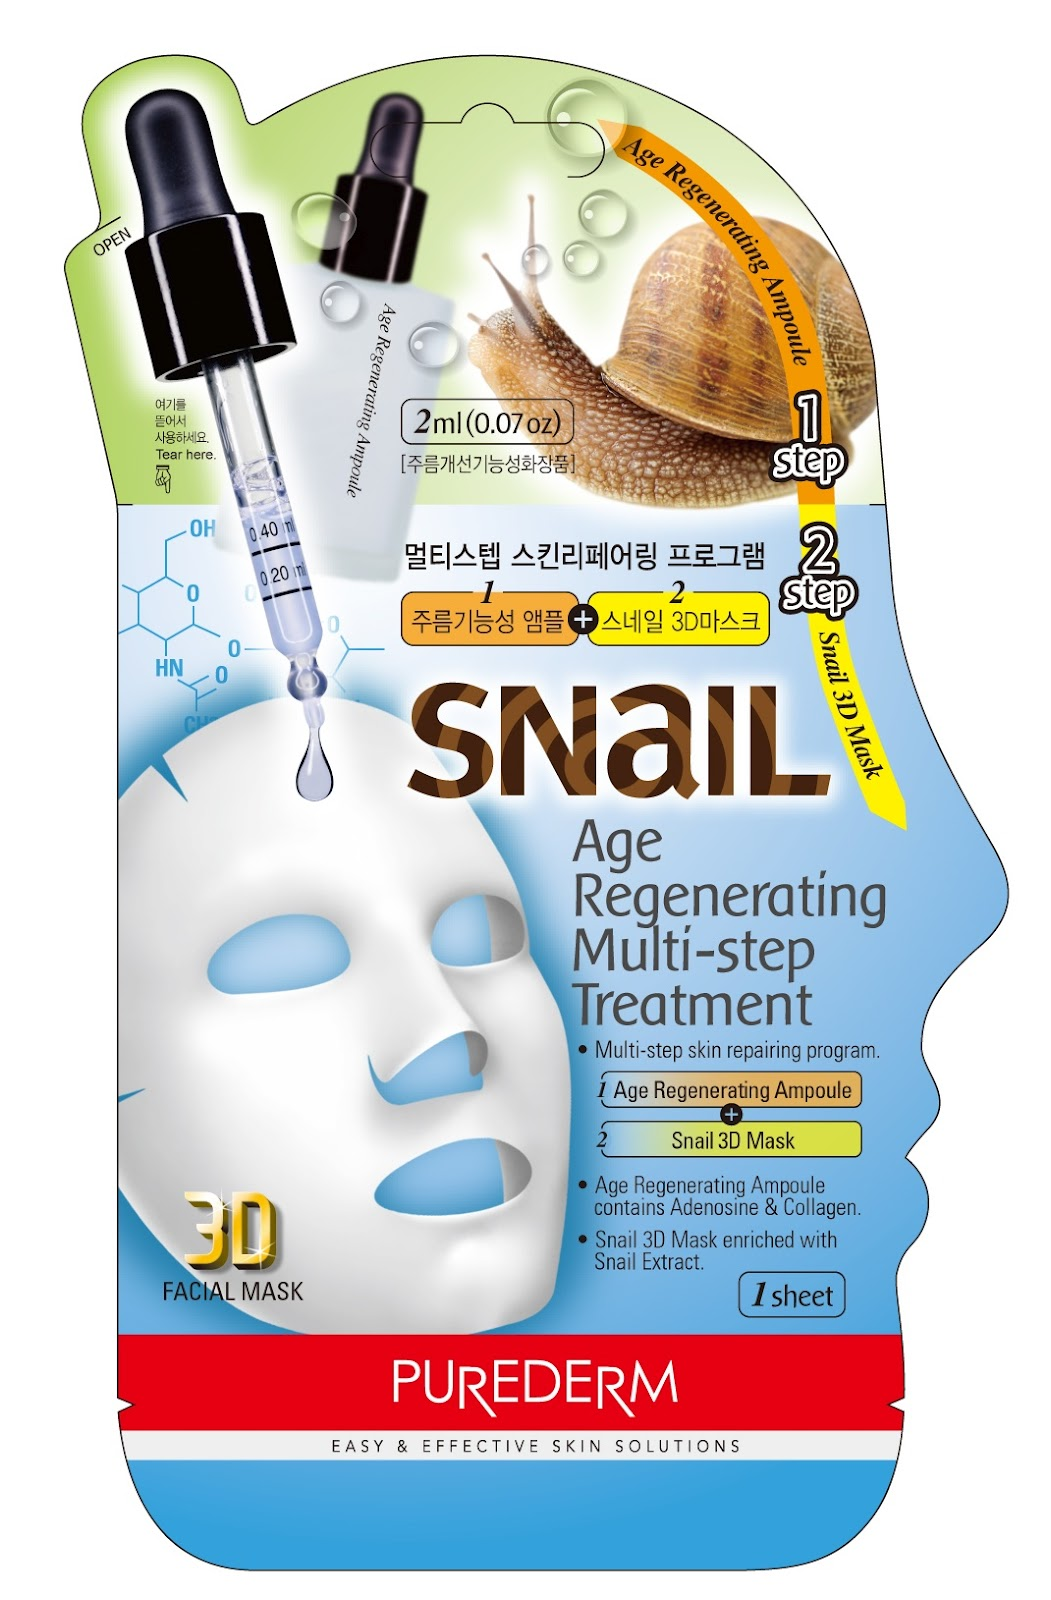 Regenerating procedure for face in 2 steps - 3D mask with a garden snail extract serum Purederm